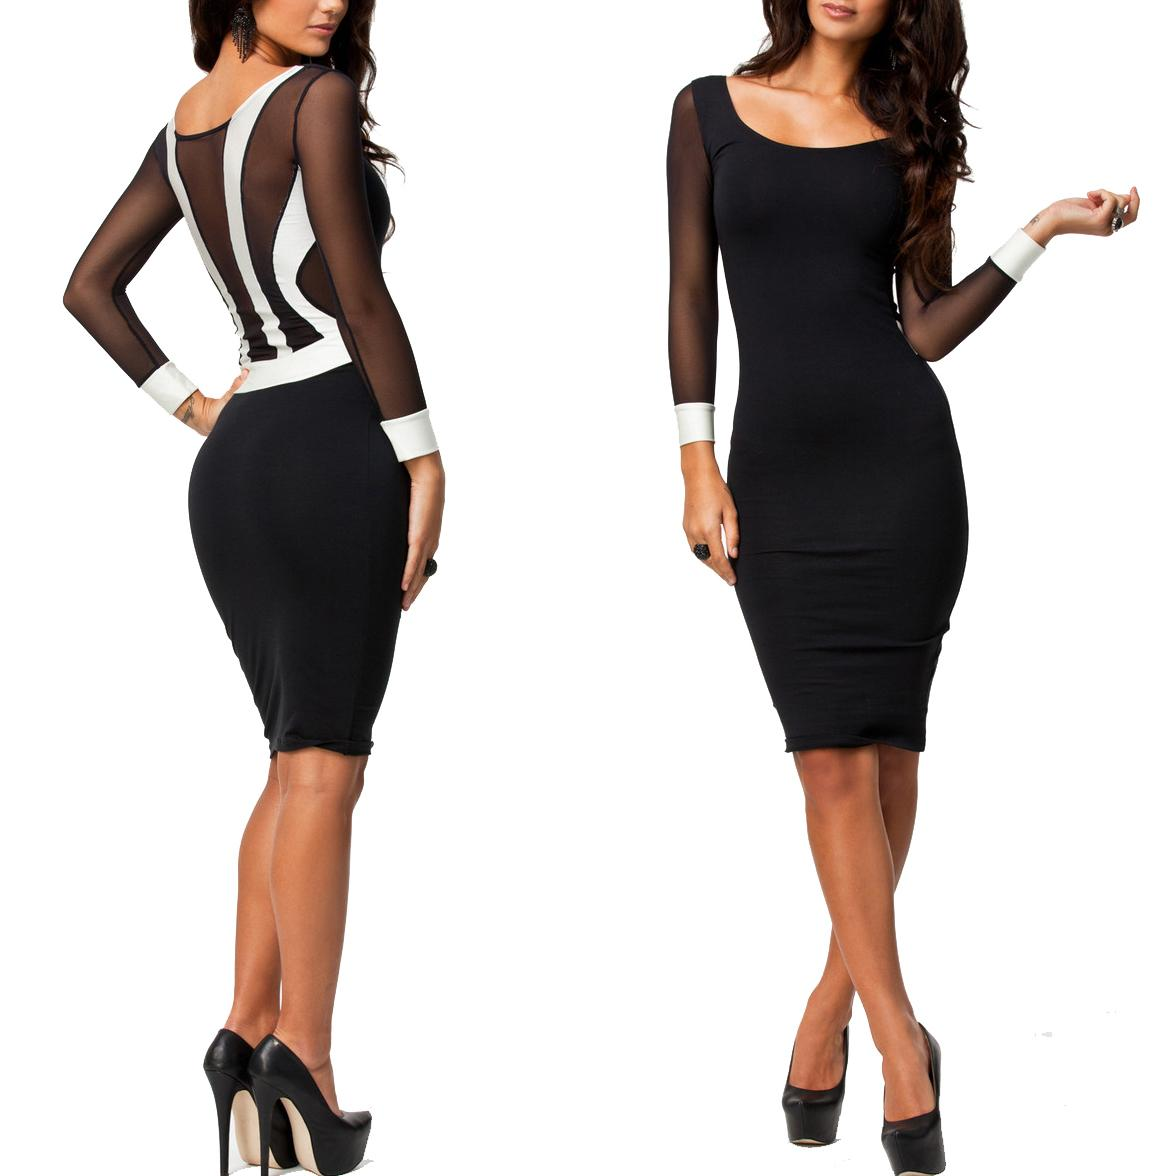 d9924b9a9f0f elegant women party dress long sleeve transparent mesh women s bodycon knee  length pencil dress slim bandage